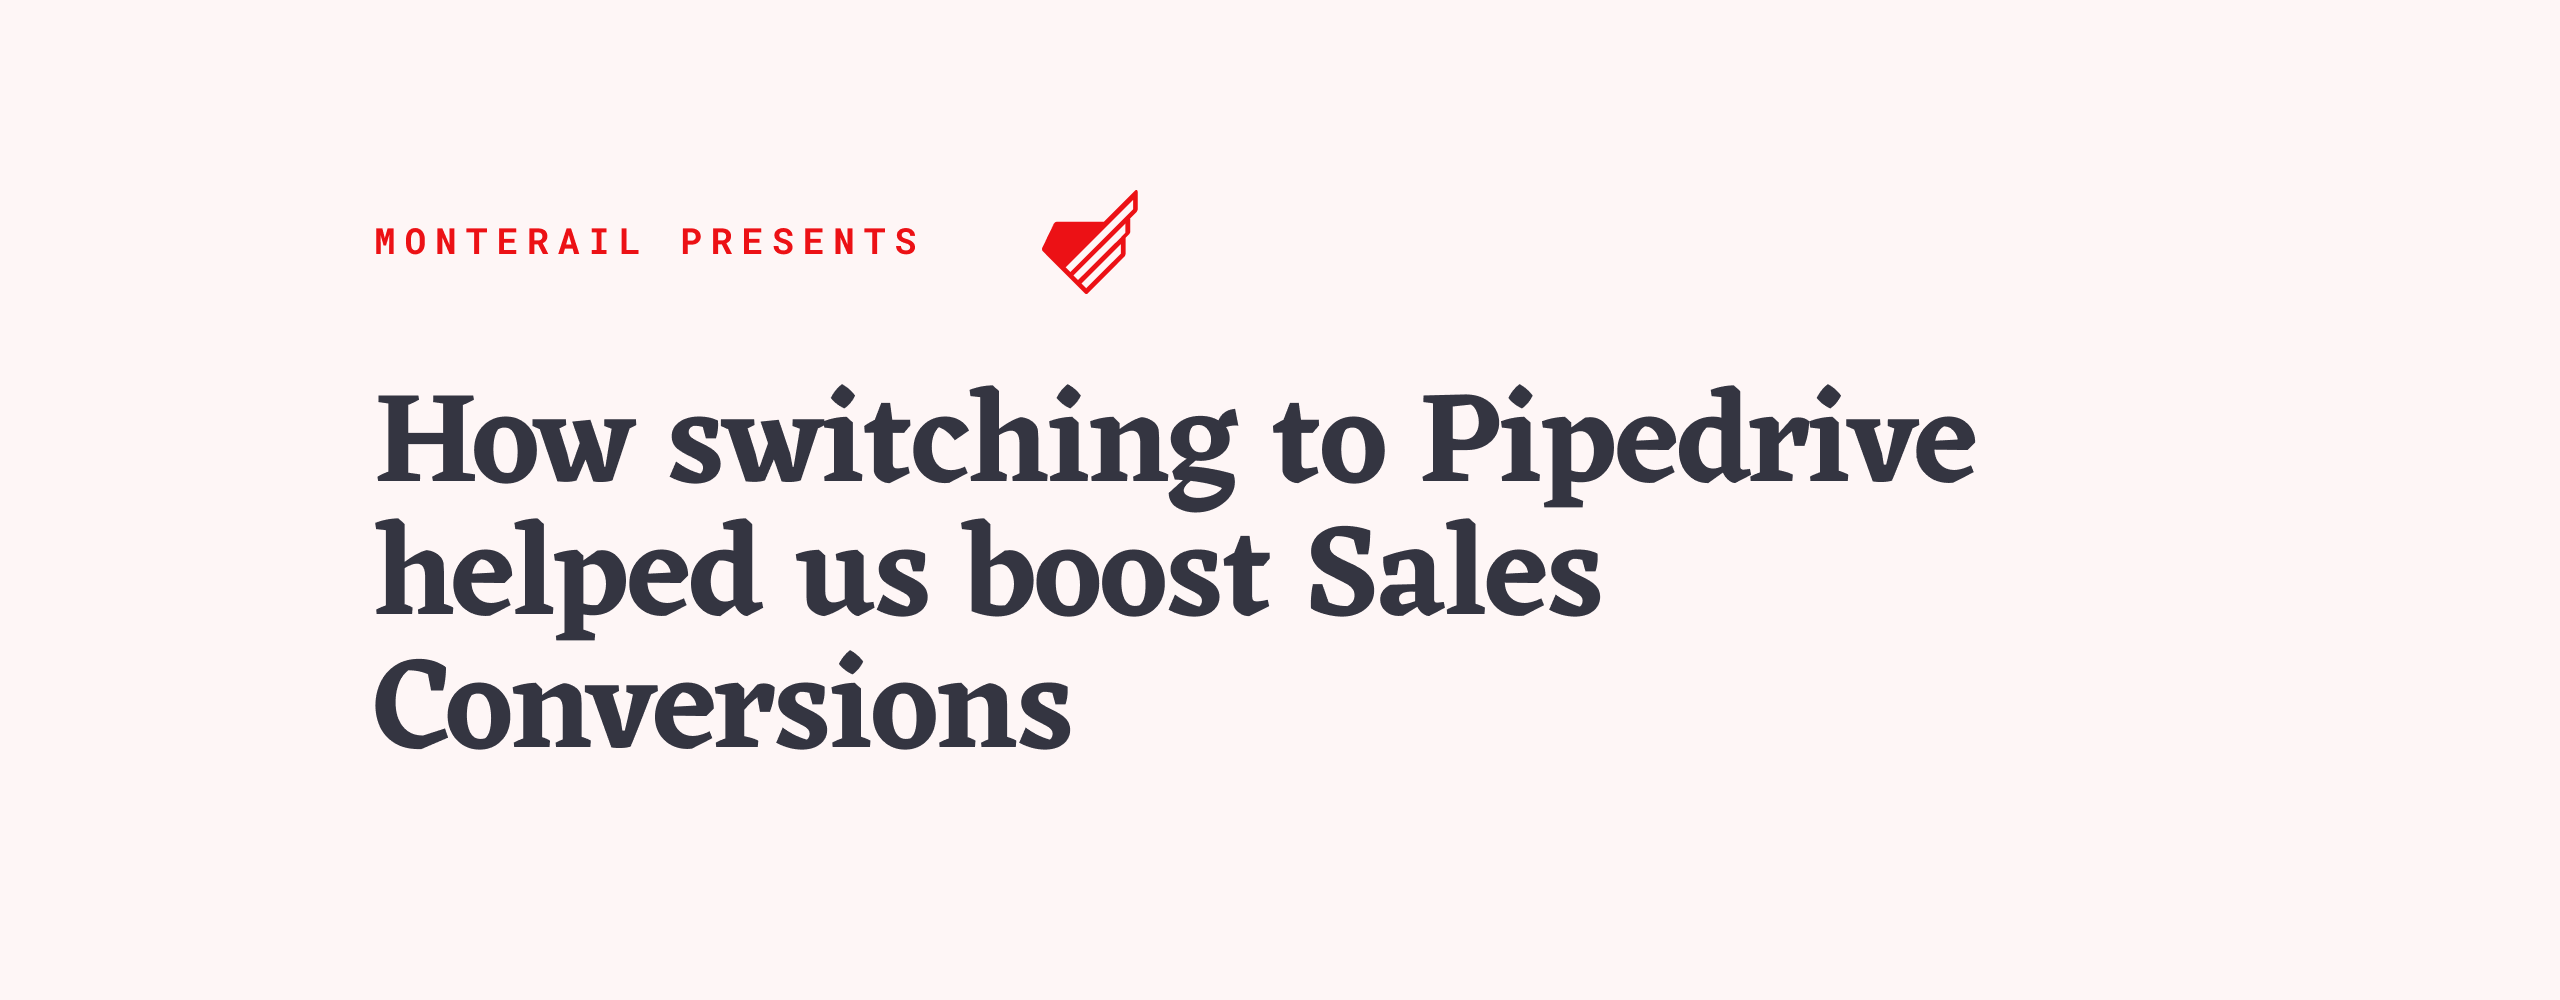 How Switching to Pipedrive Helped us Boost Sales Conversions